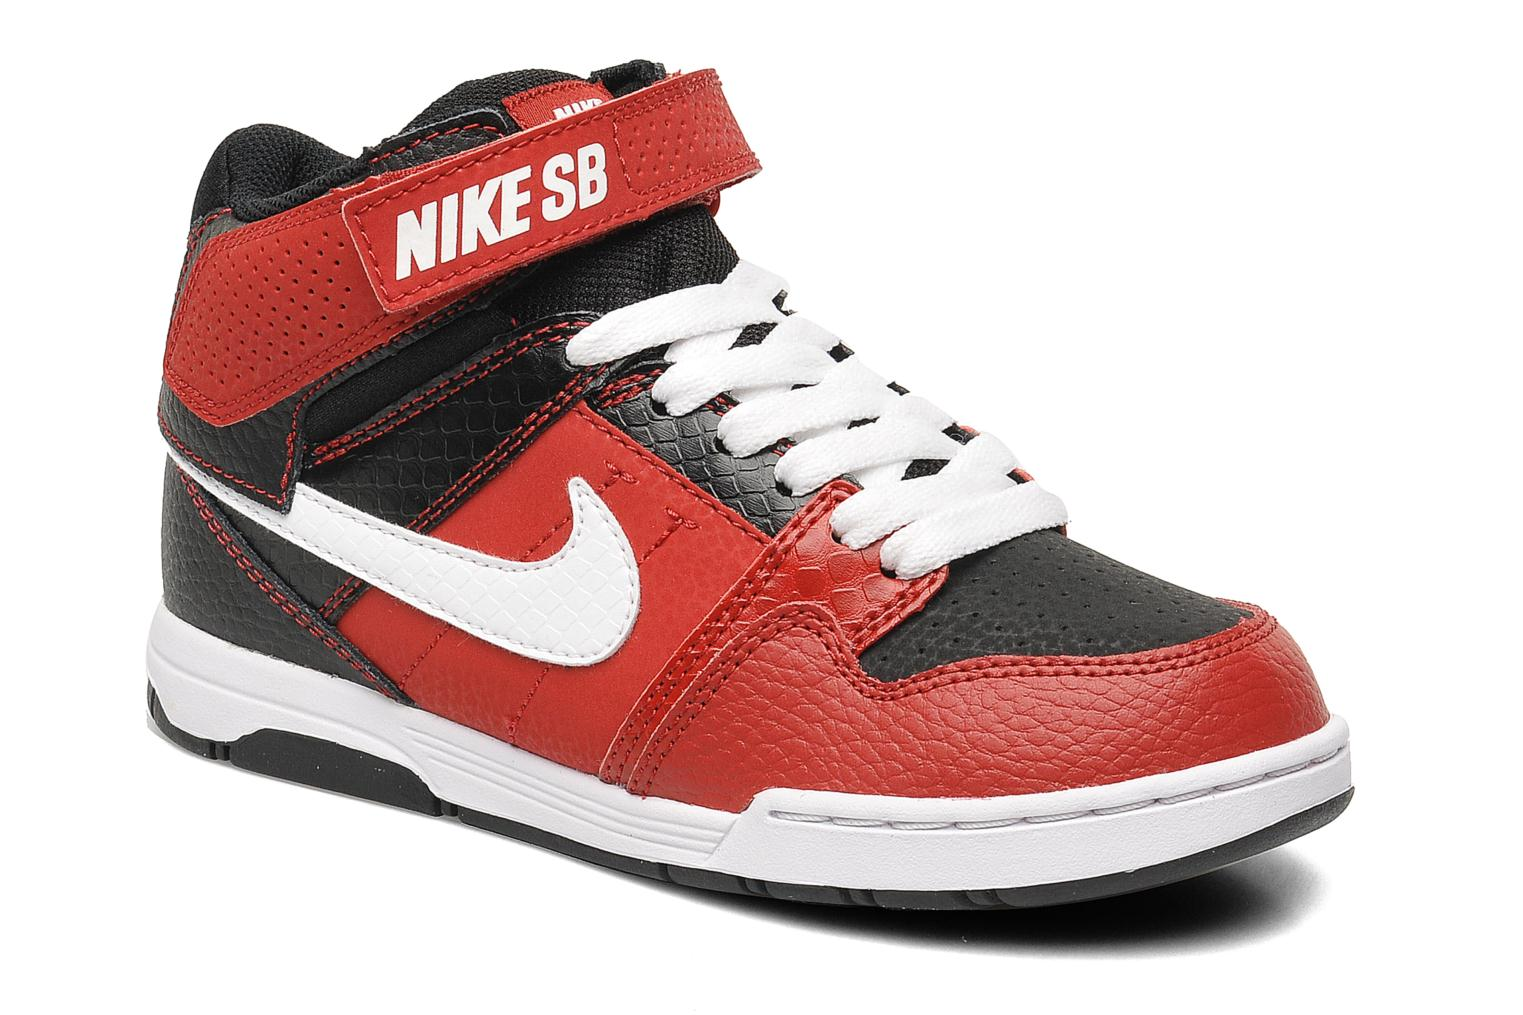 4a01459a6b8 Nike Mogan Girls Sneakers - Musée des impressionnismes Giverny